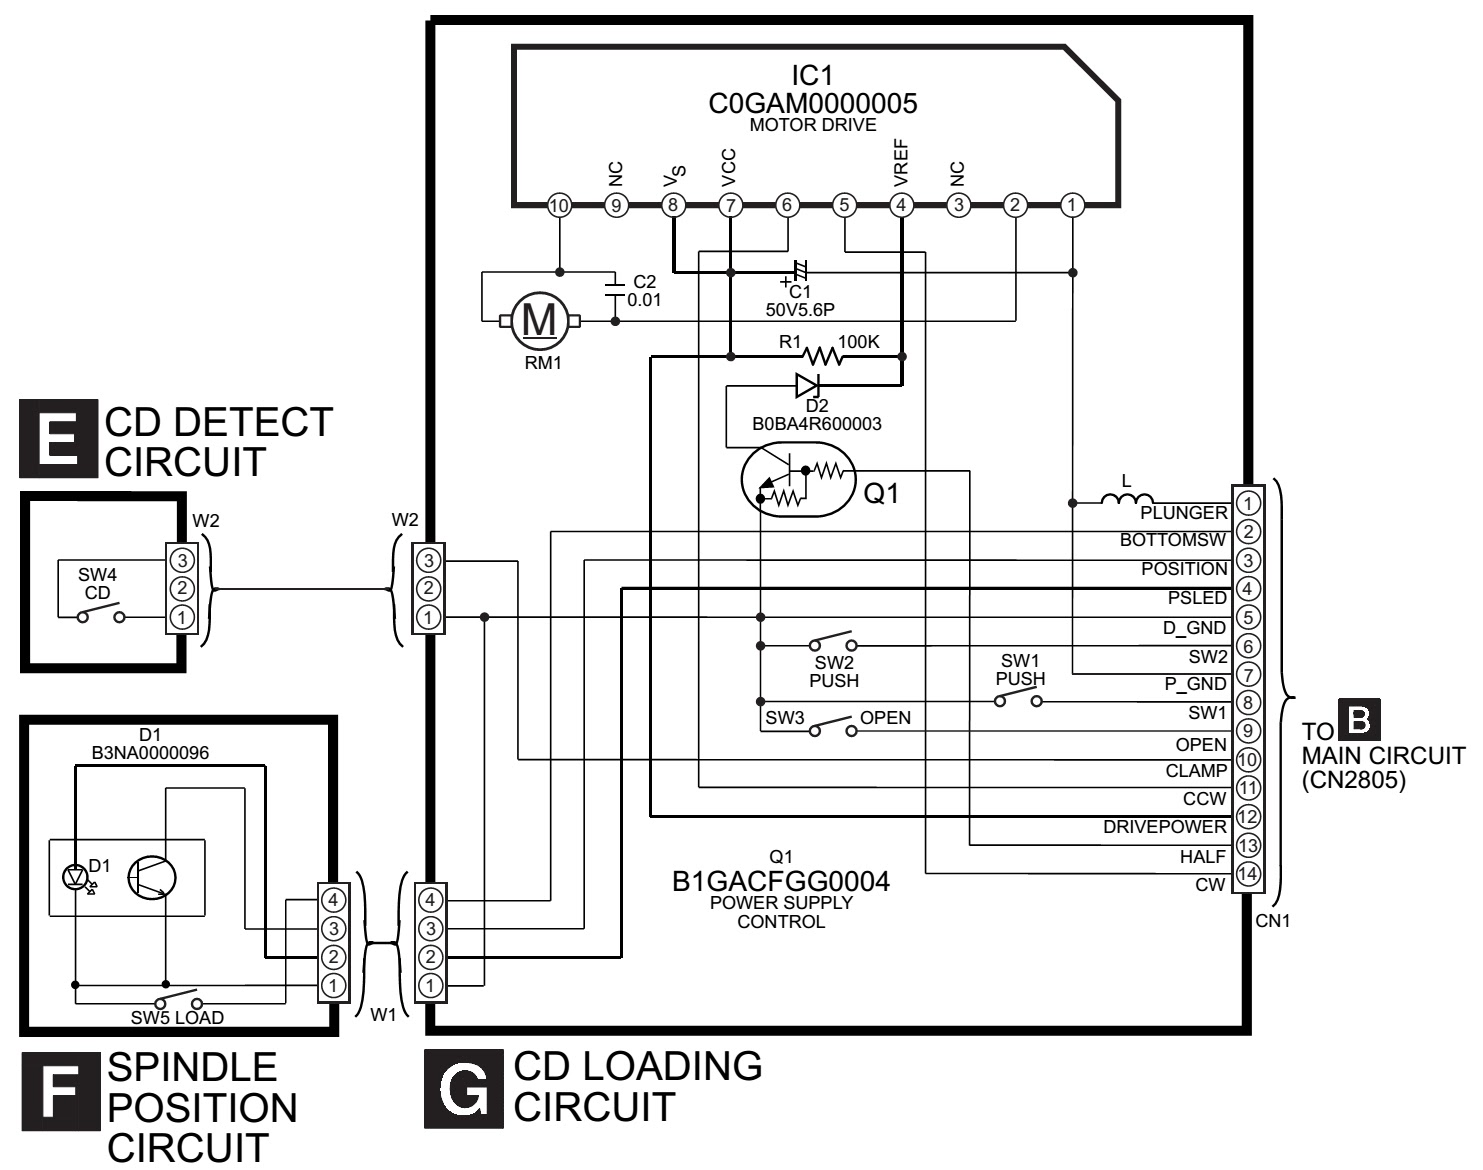 Auto Rod Controls 3700 Wiring Diagram Electrical Related With